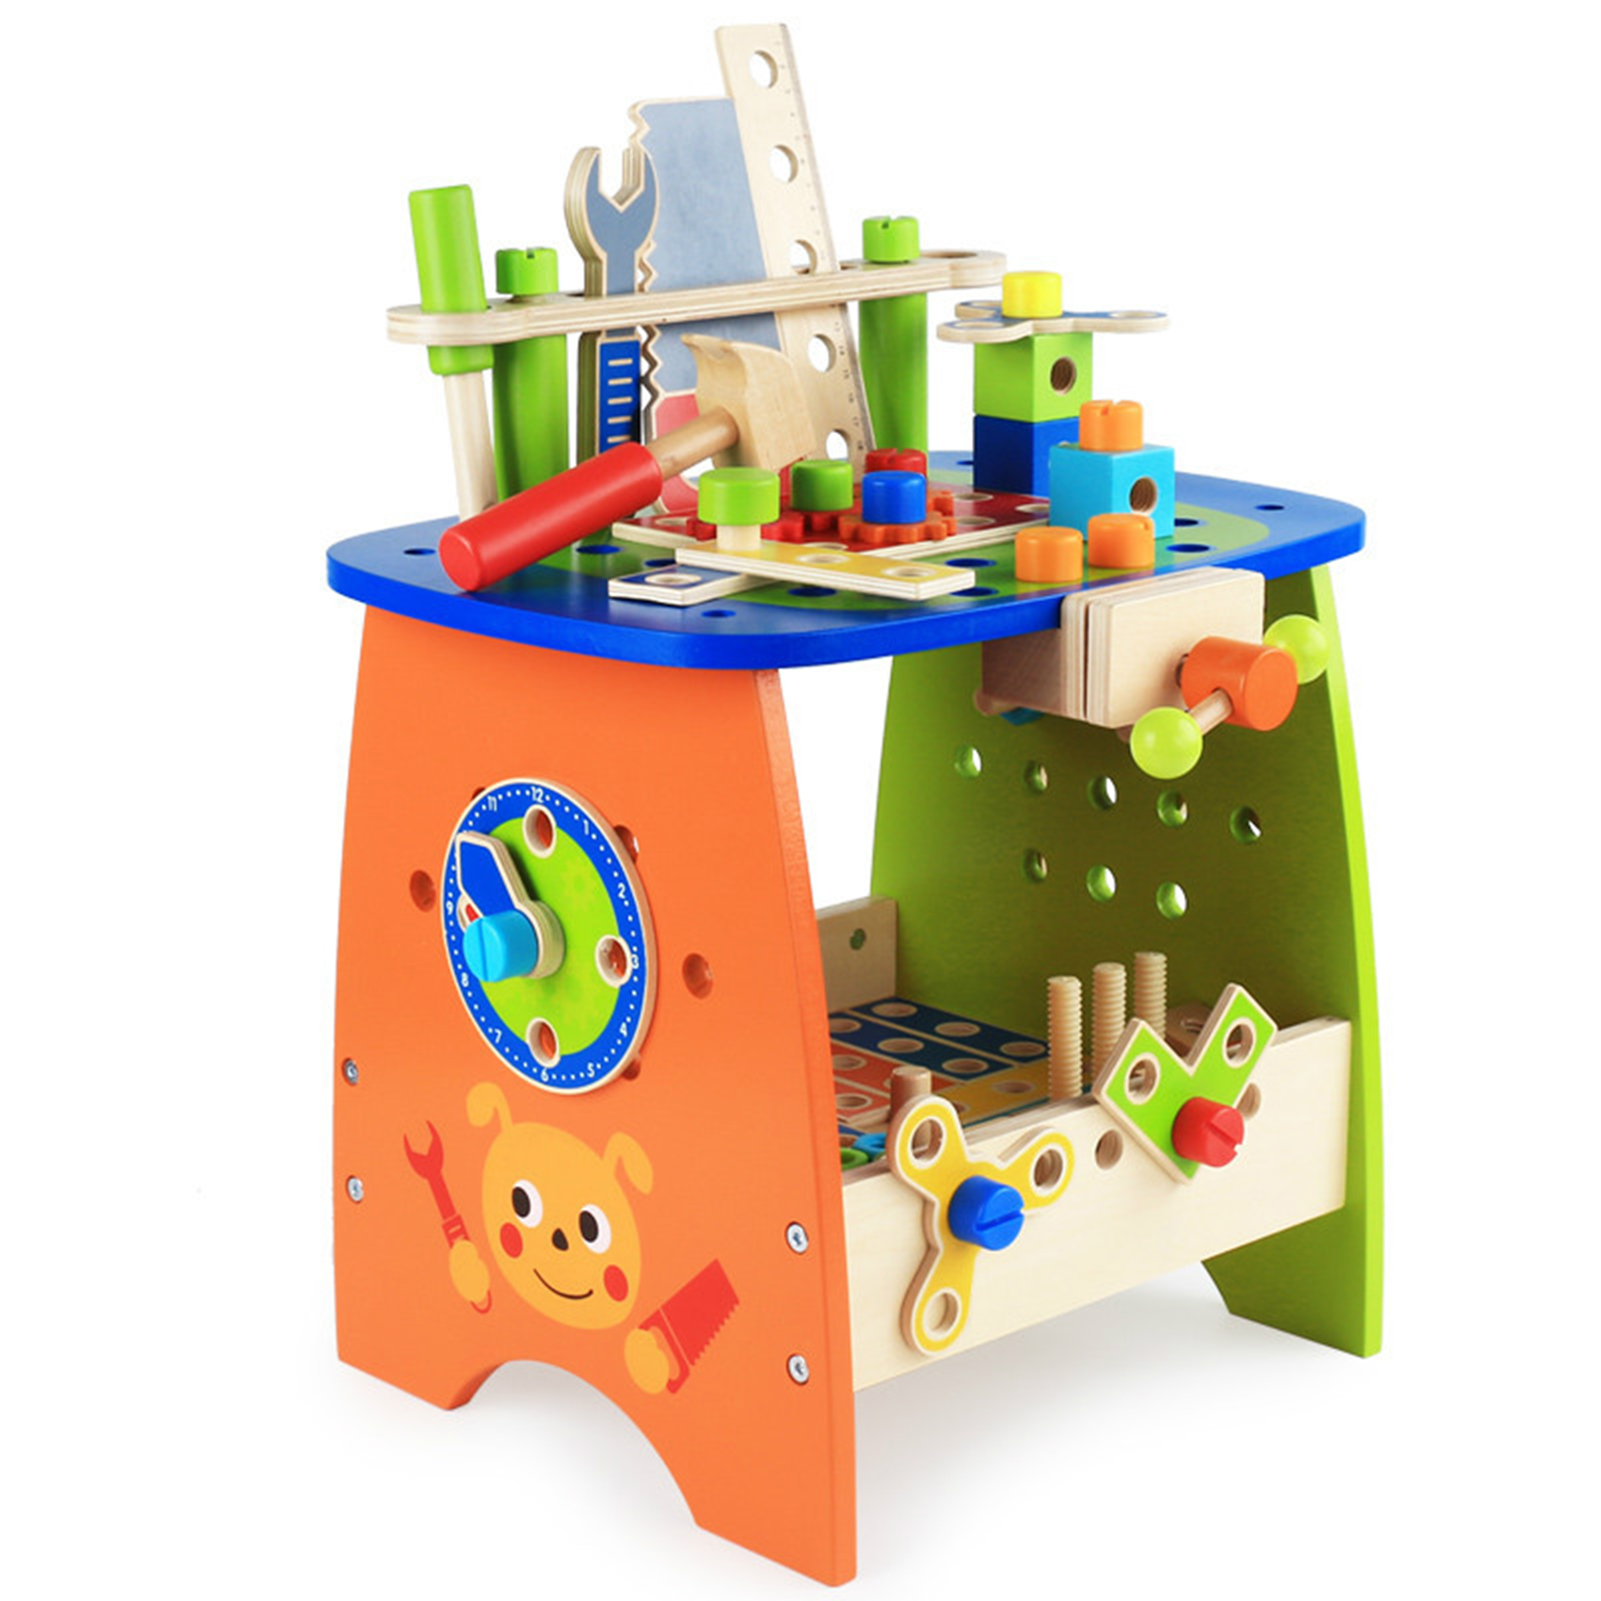 DIY High Quality Wood Children's Tool Bench Toy Disassembly Wooden Workbench Toy For Kids Learning Education Logical Thinking